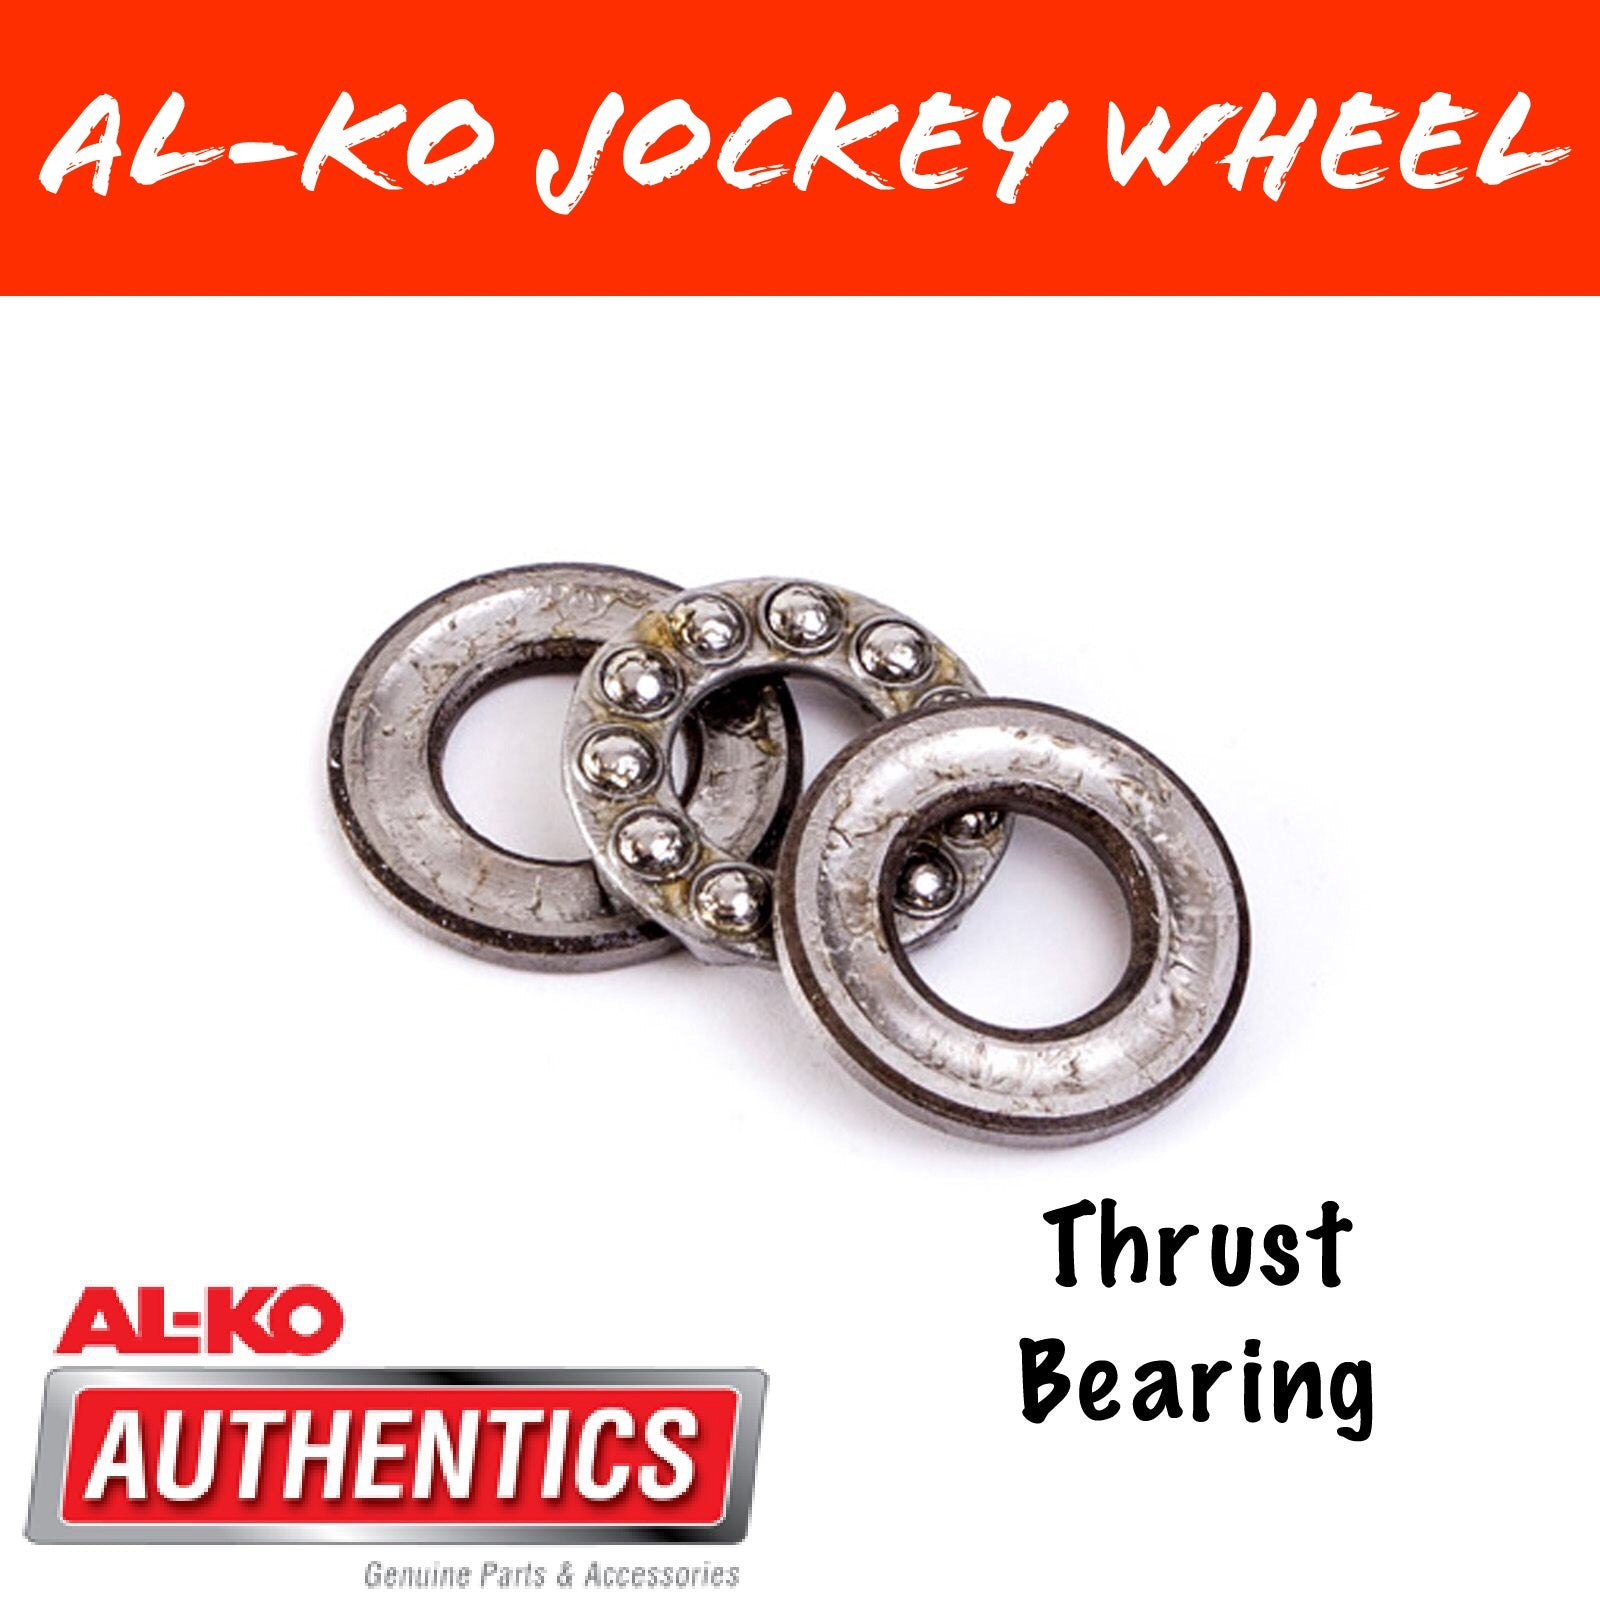 AL-KO Thrust Bearing Replacement Kit